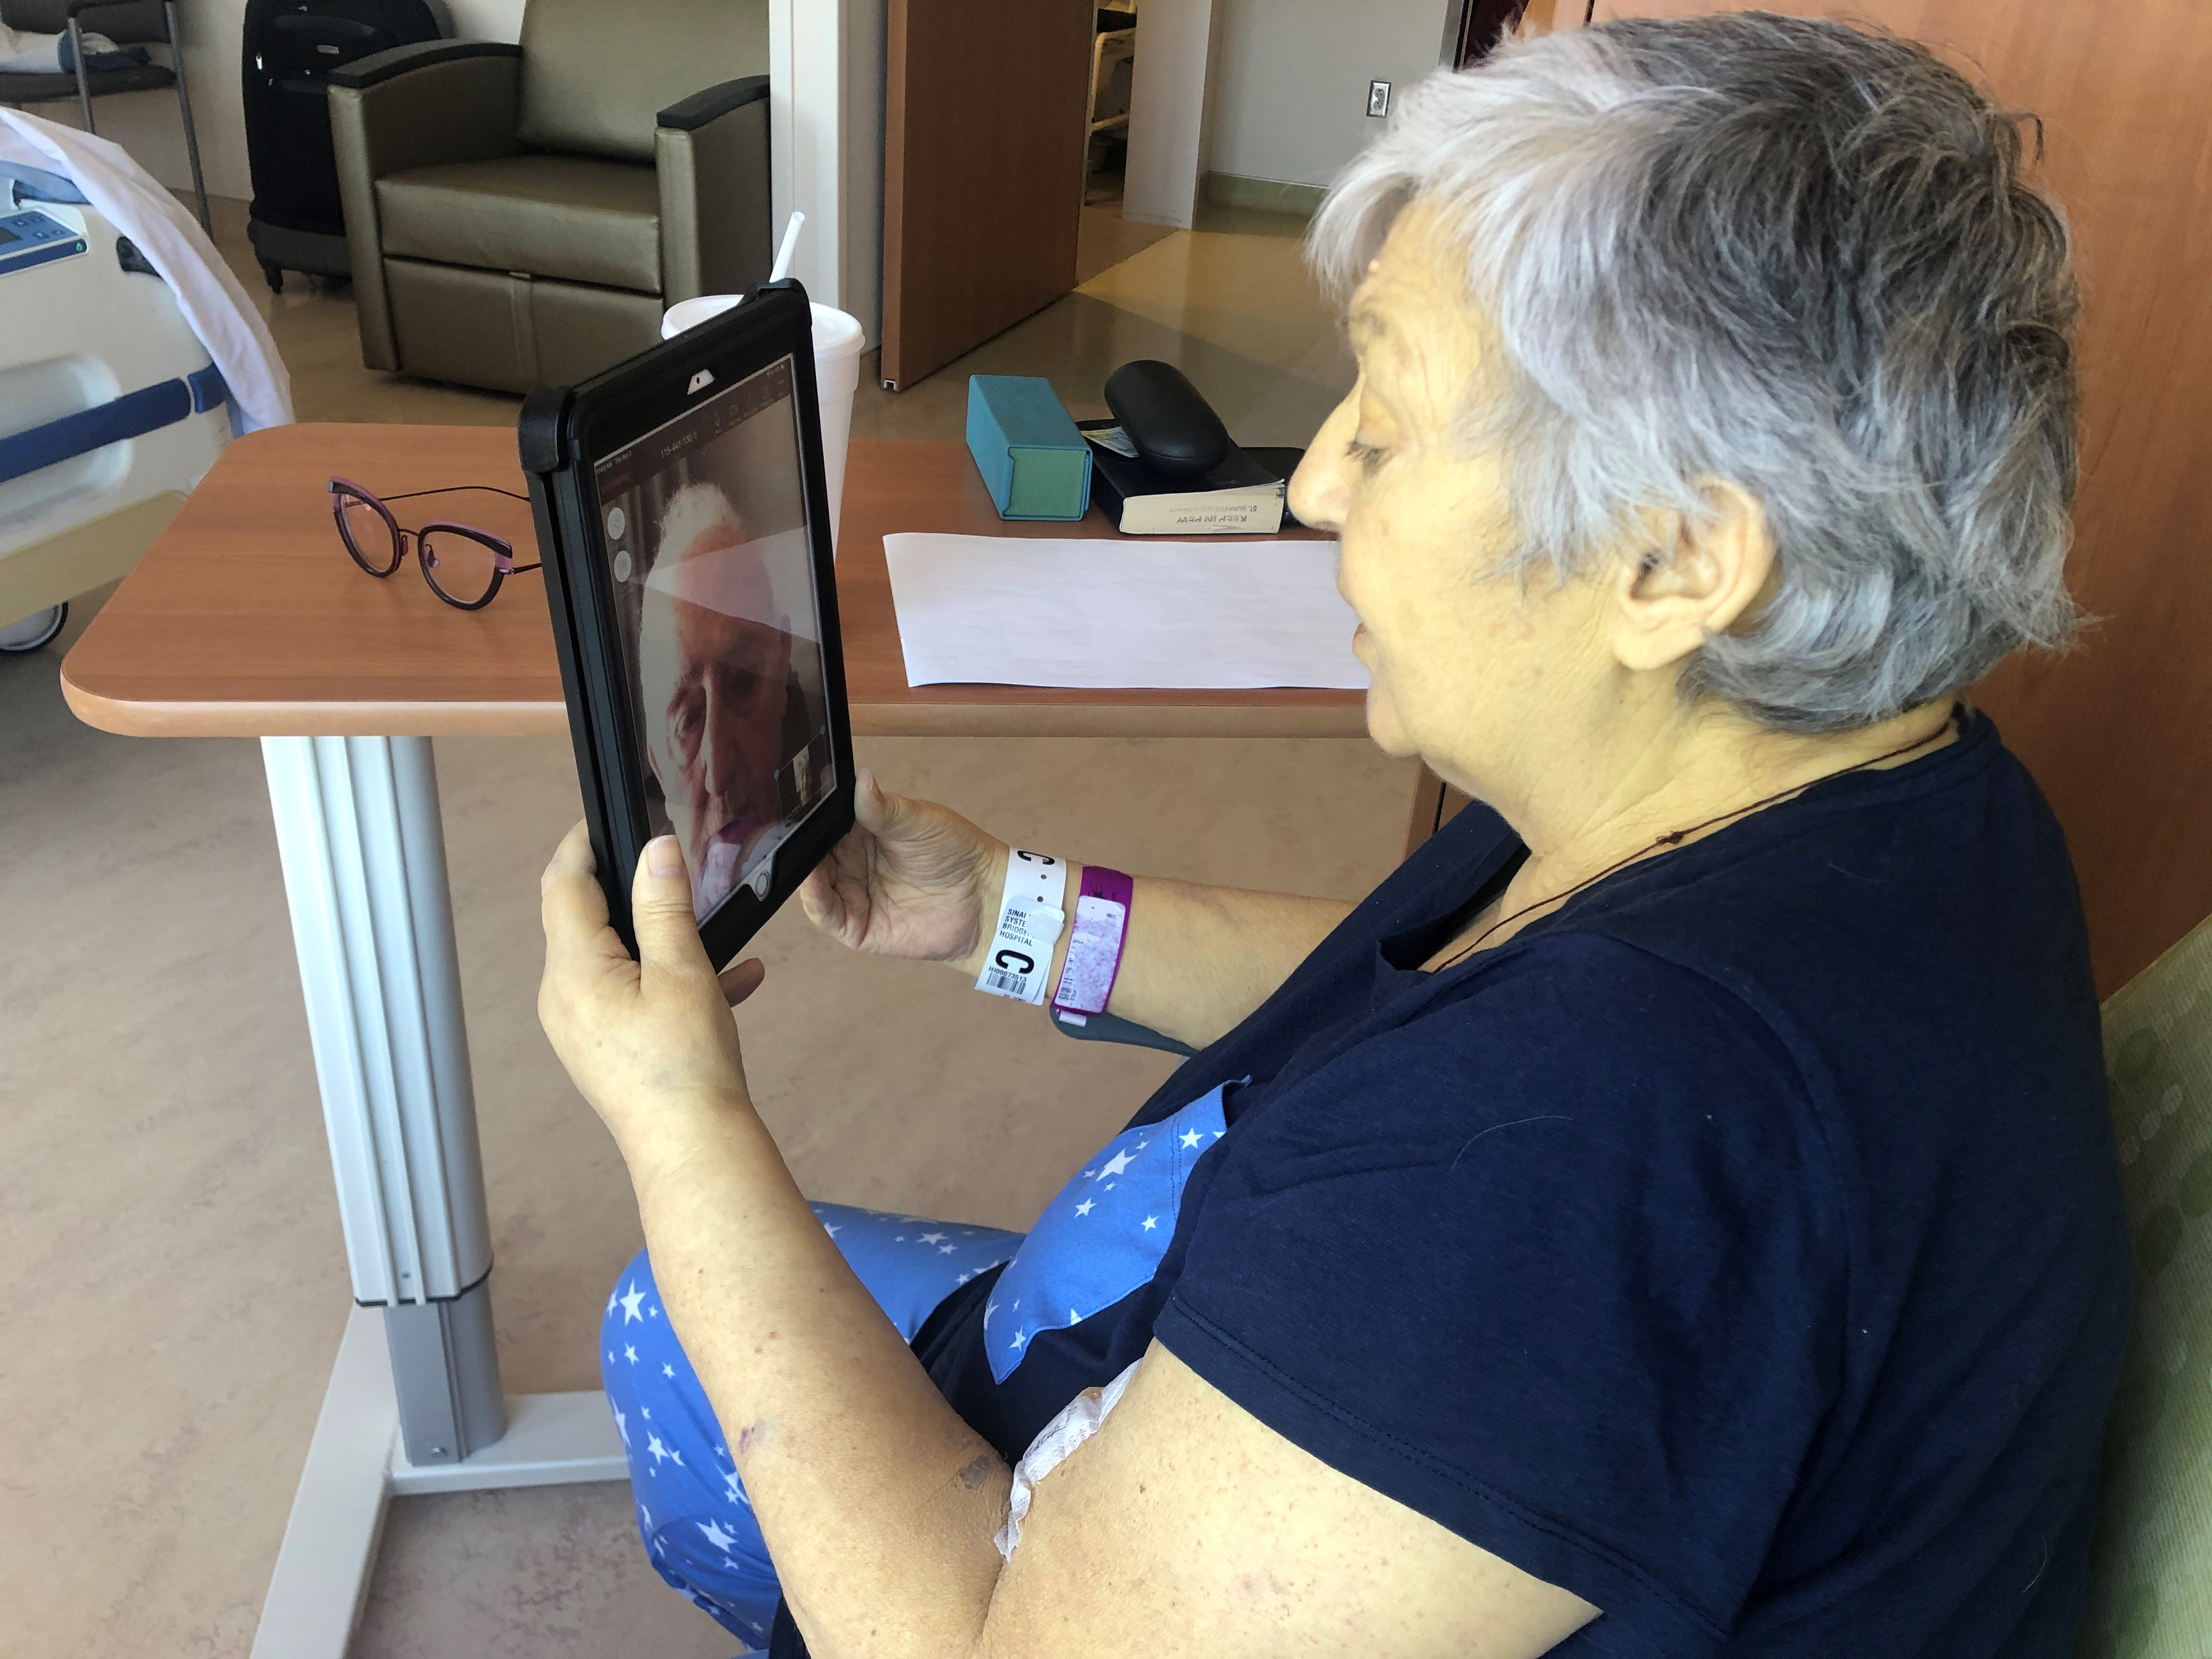 A woman seated in a hospital room holds up a tablet while video conferencing with her family